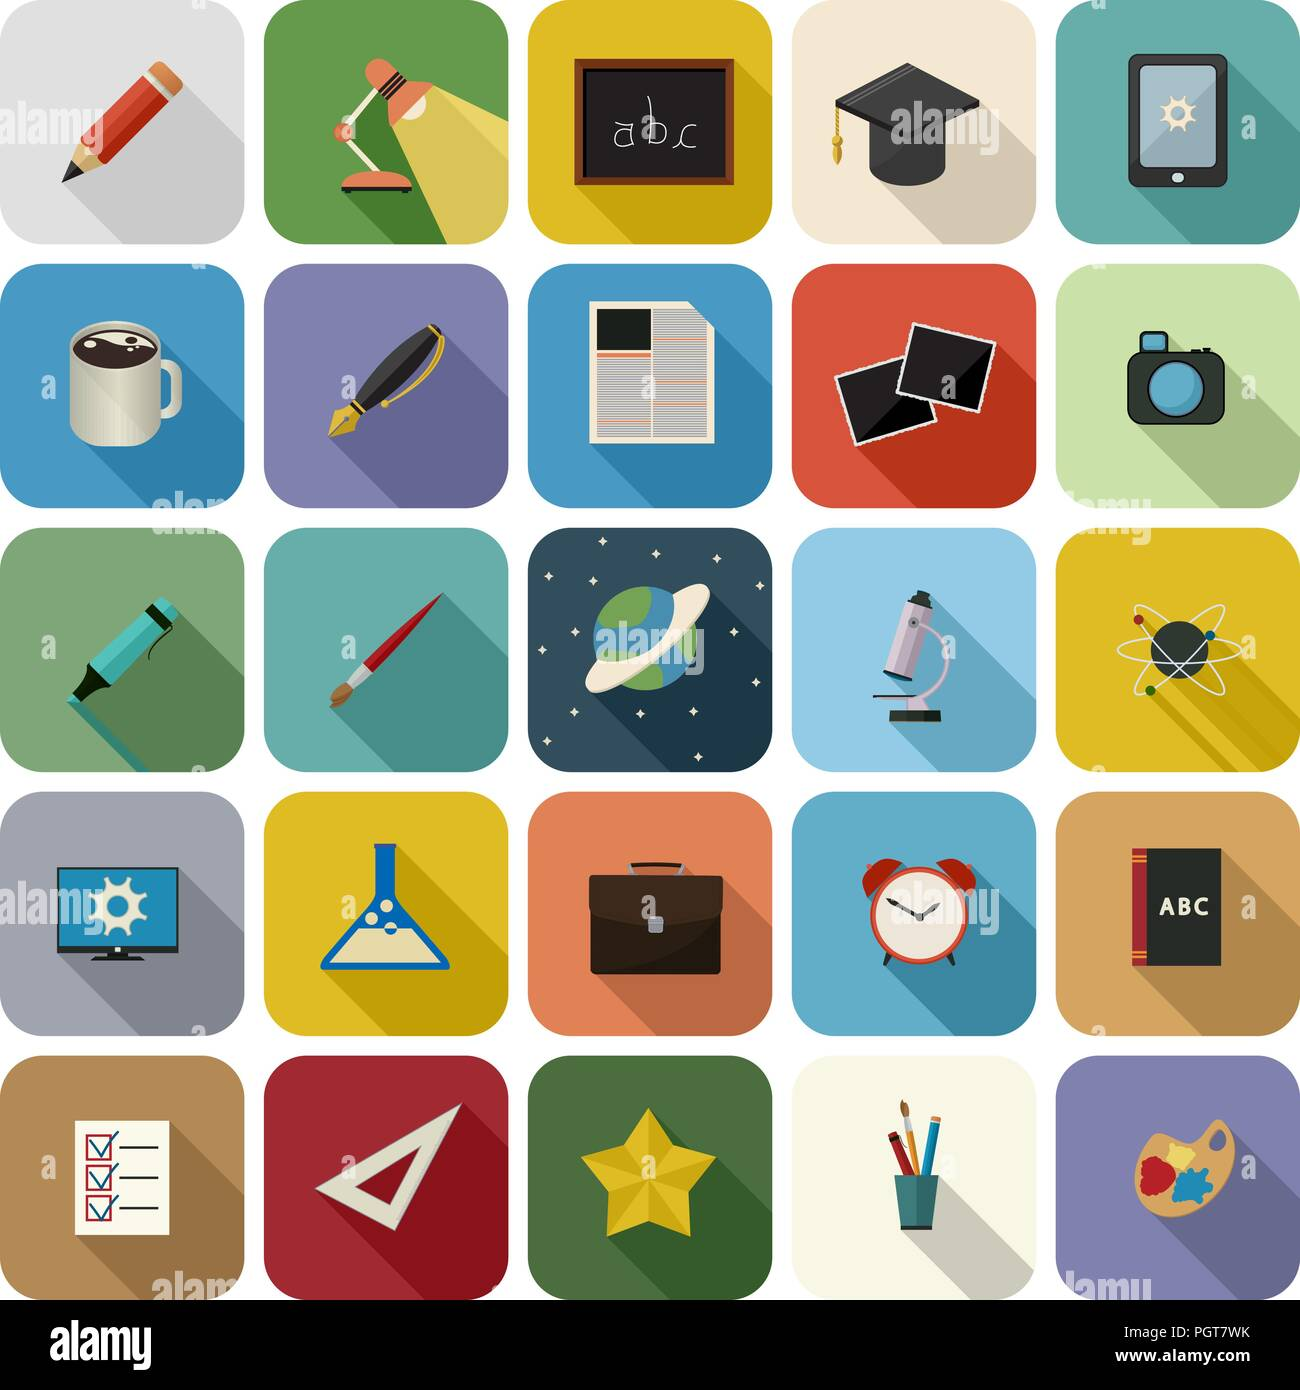 Set of education flat icon set with long shaddow against white background - Stock Vector